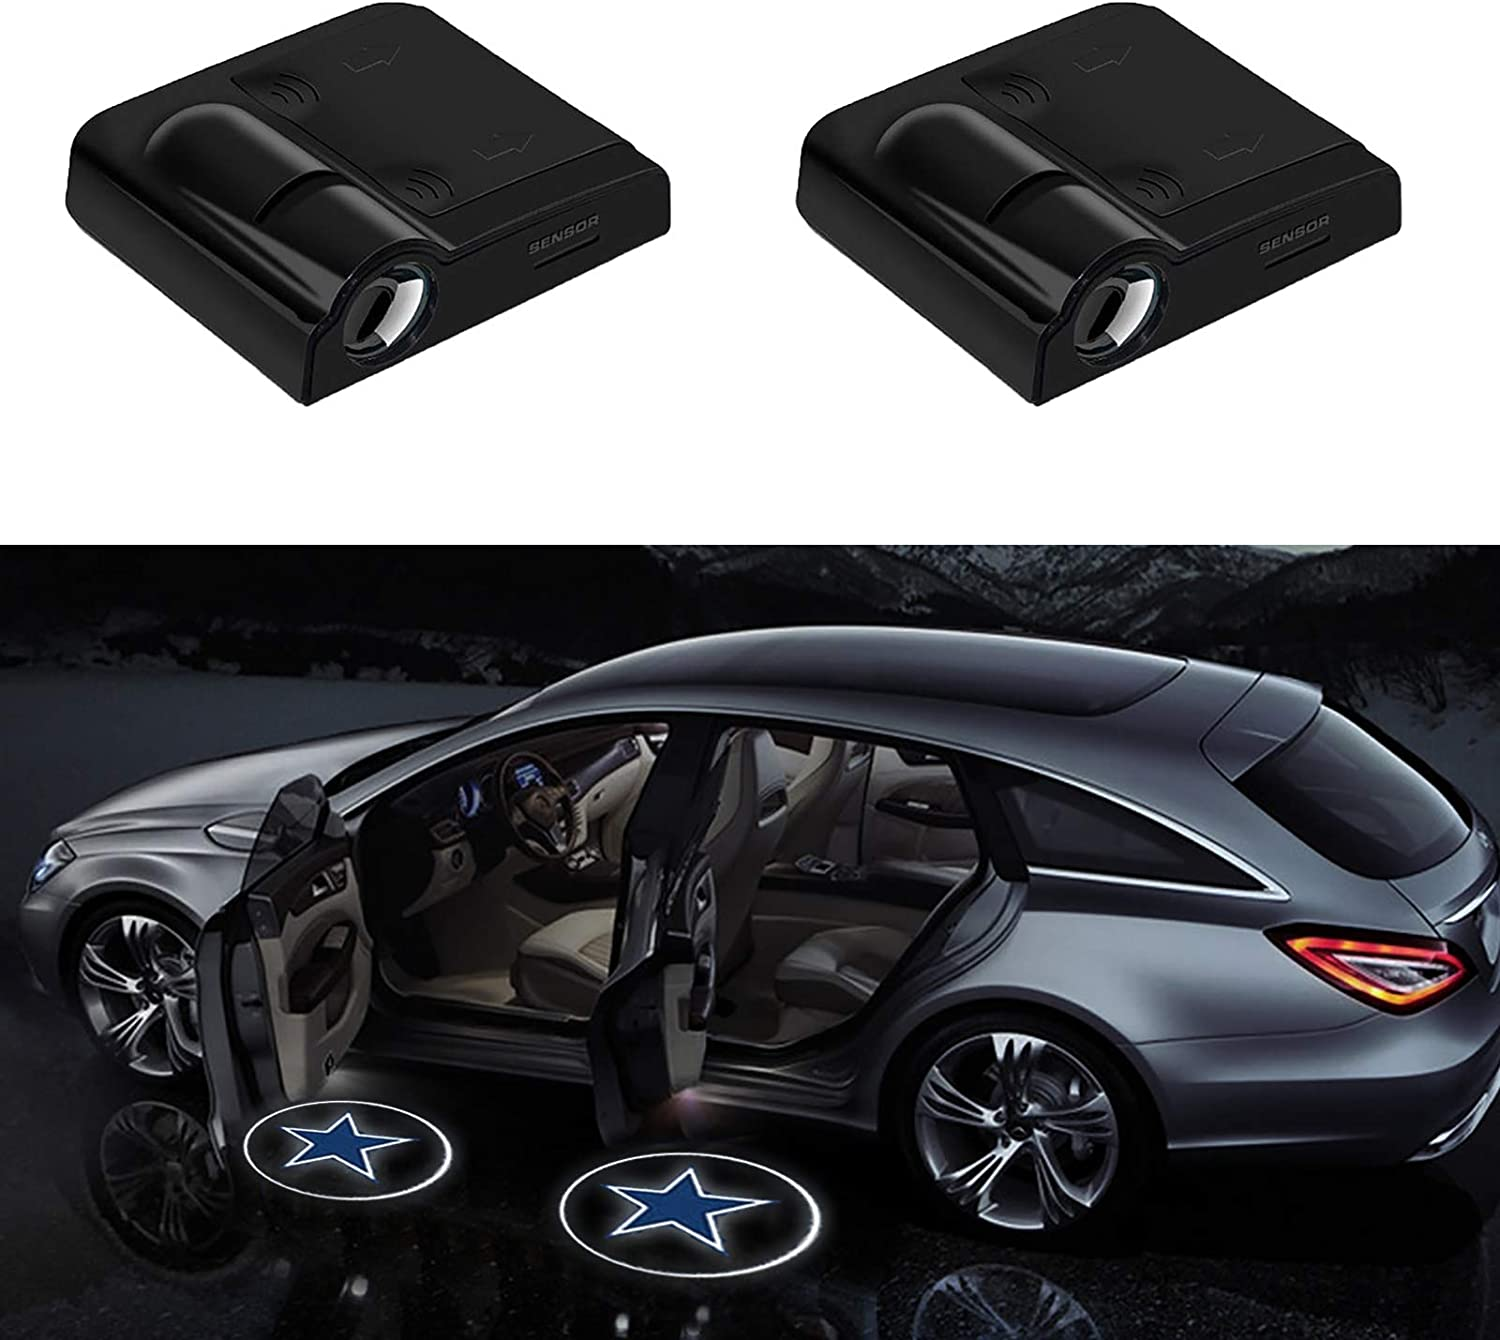 2 pcs Universal Wireless Projector Light Car Door Welcome Light Courtesy Lamp 4 Kinds of Film Pictures No Drilling Required